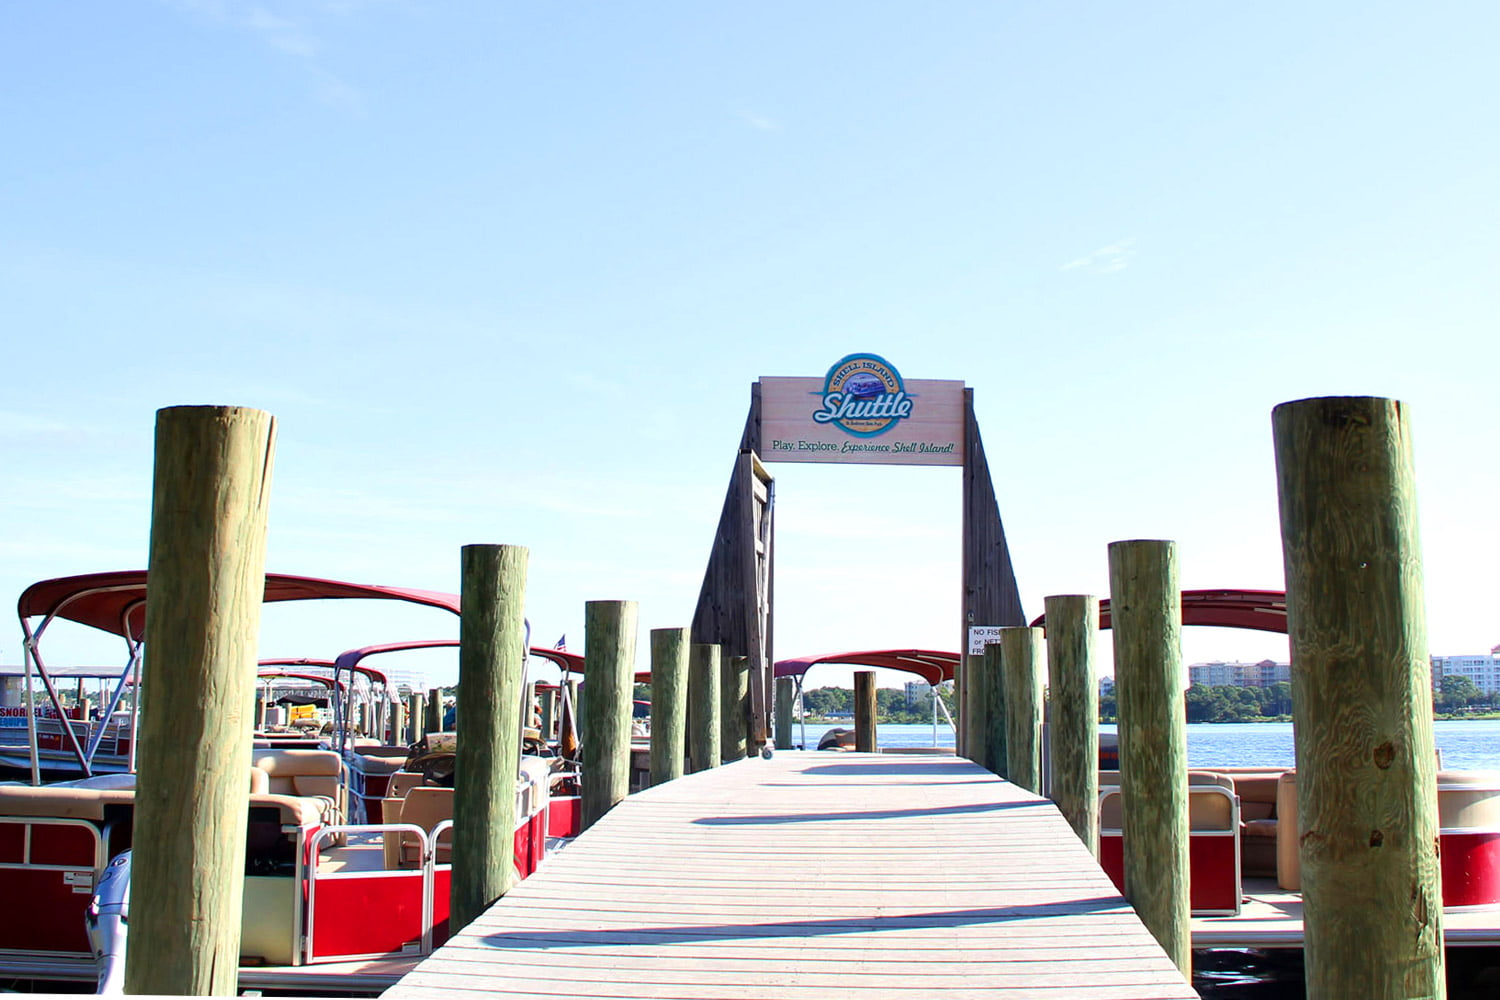 Why rent a pontoon boat in panama city beach?